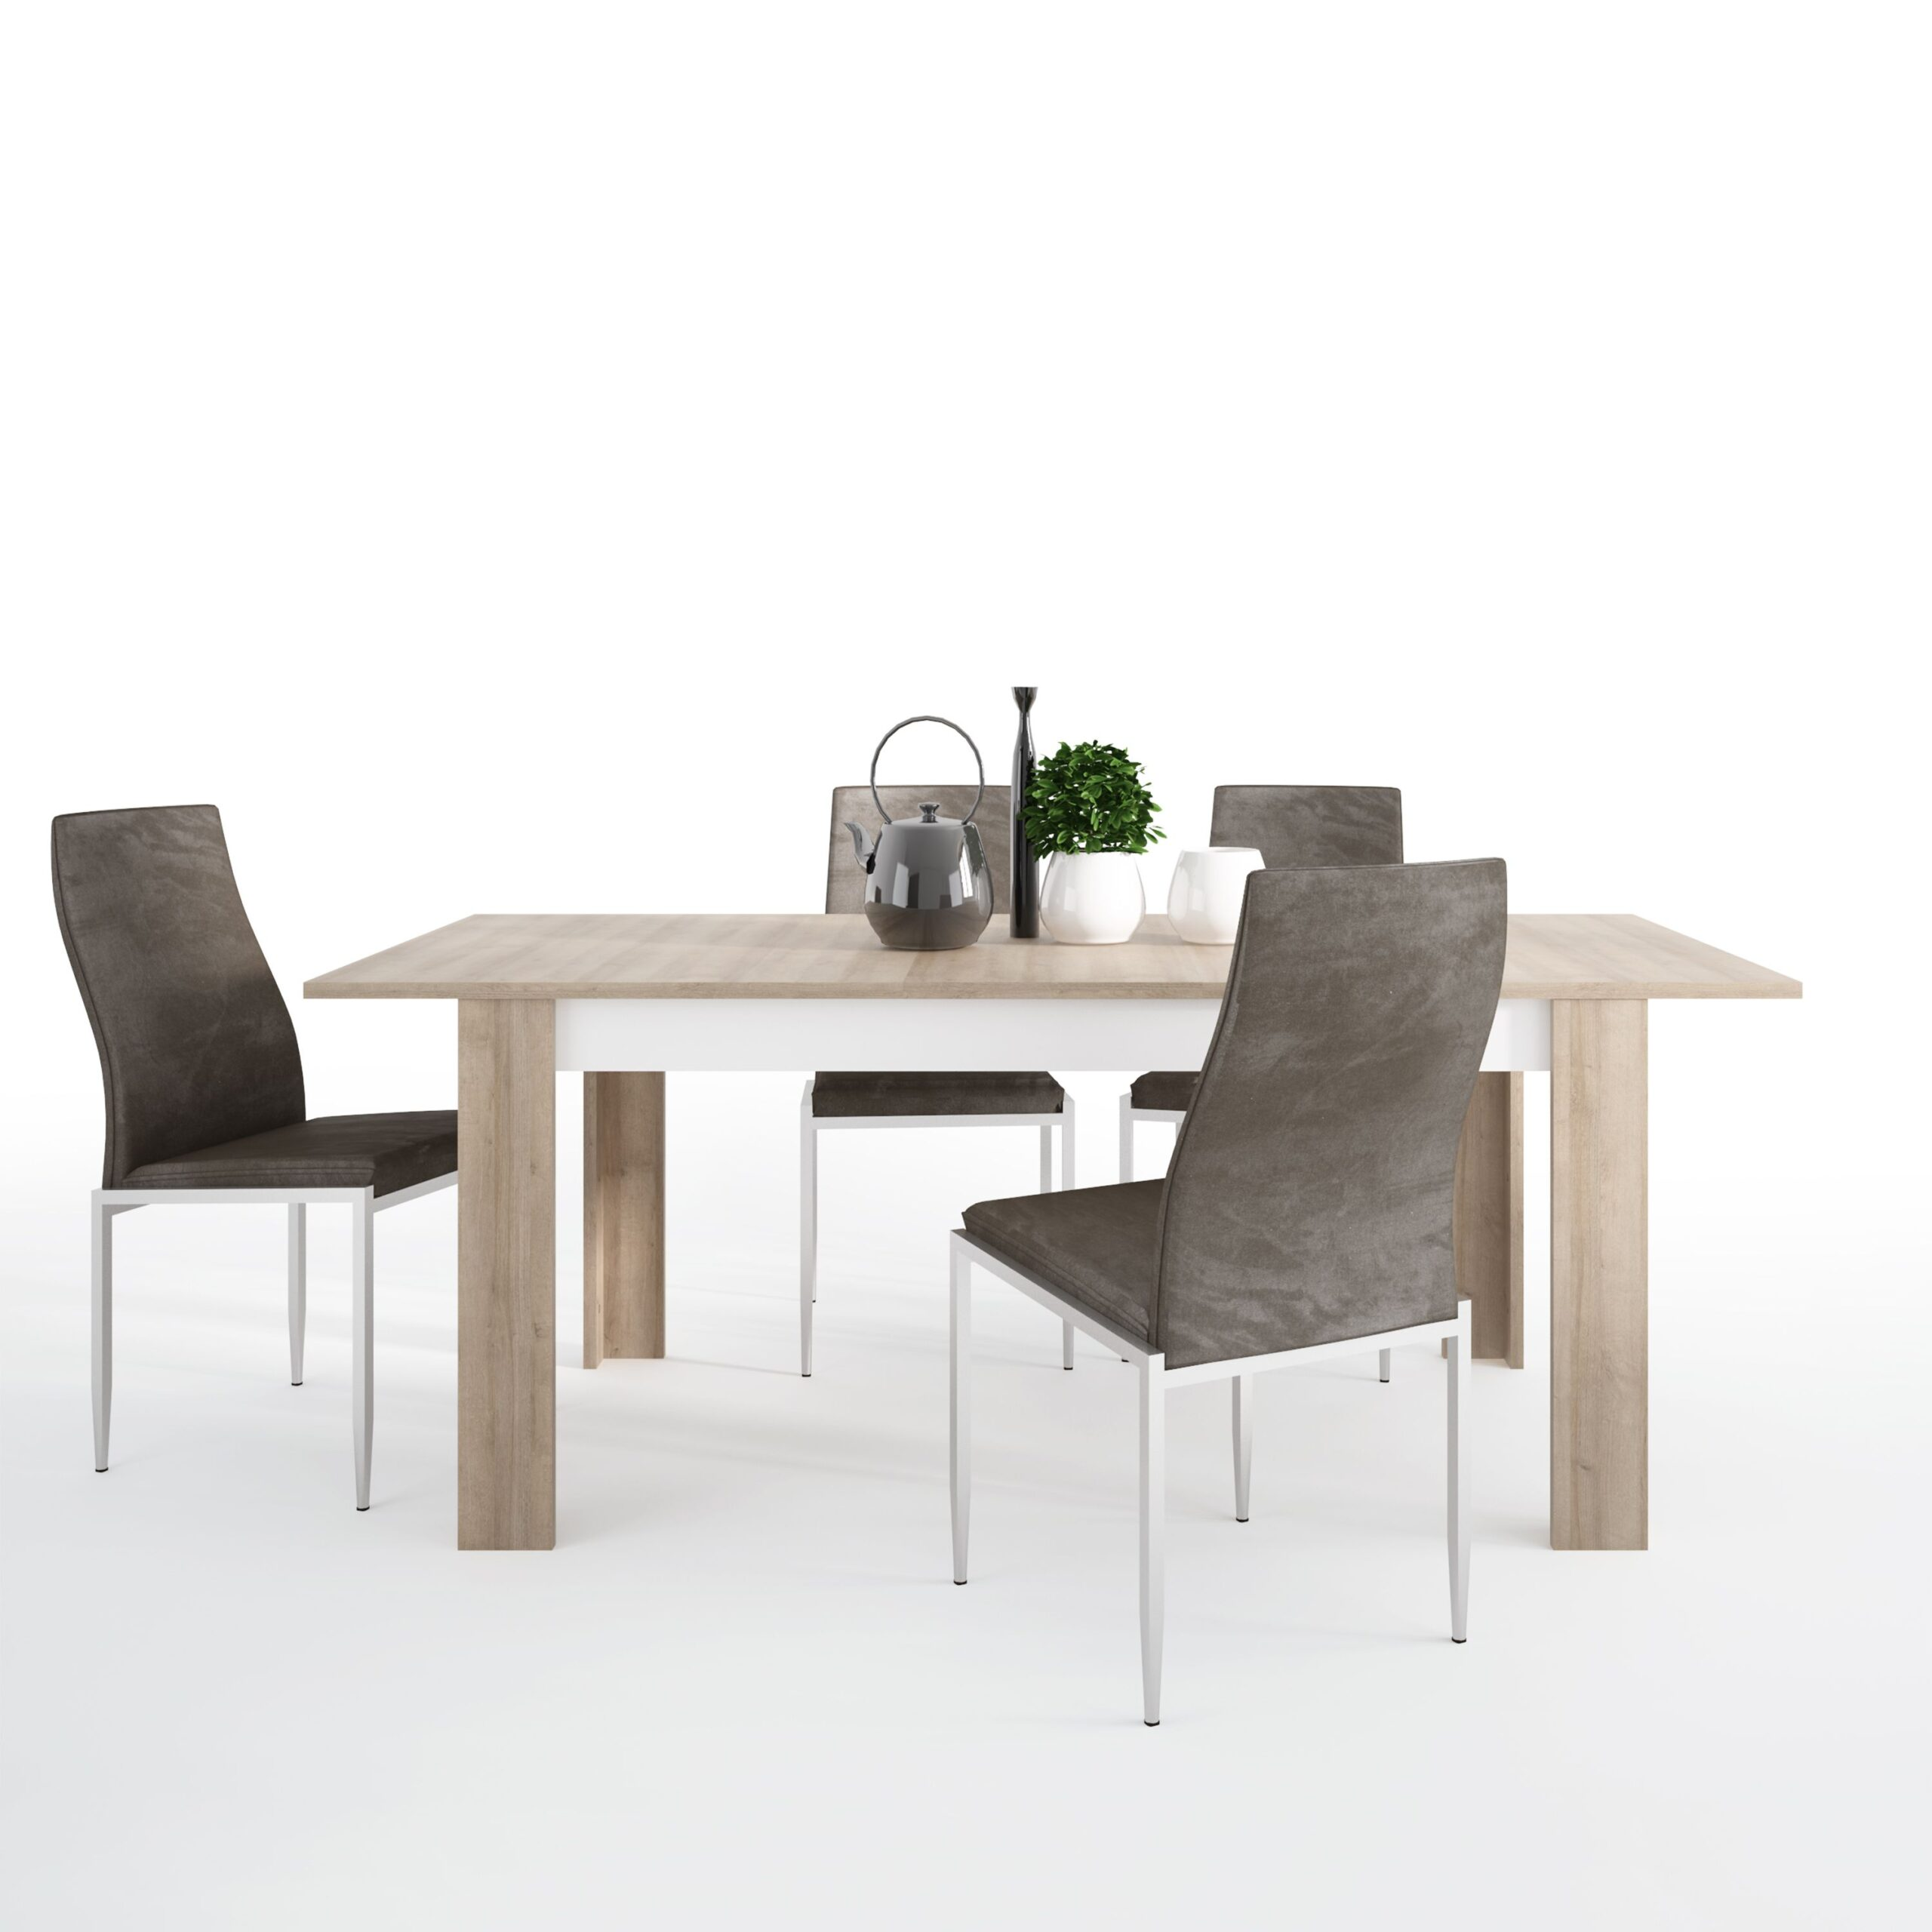 Lion Dining set package Lion Large extending dining table 160/200 cm + 6 Lillie High Back Chair Dark Brown.